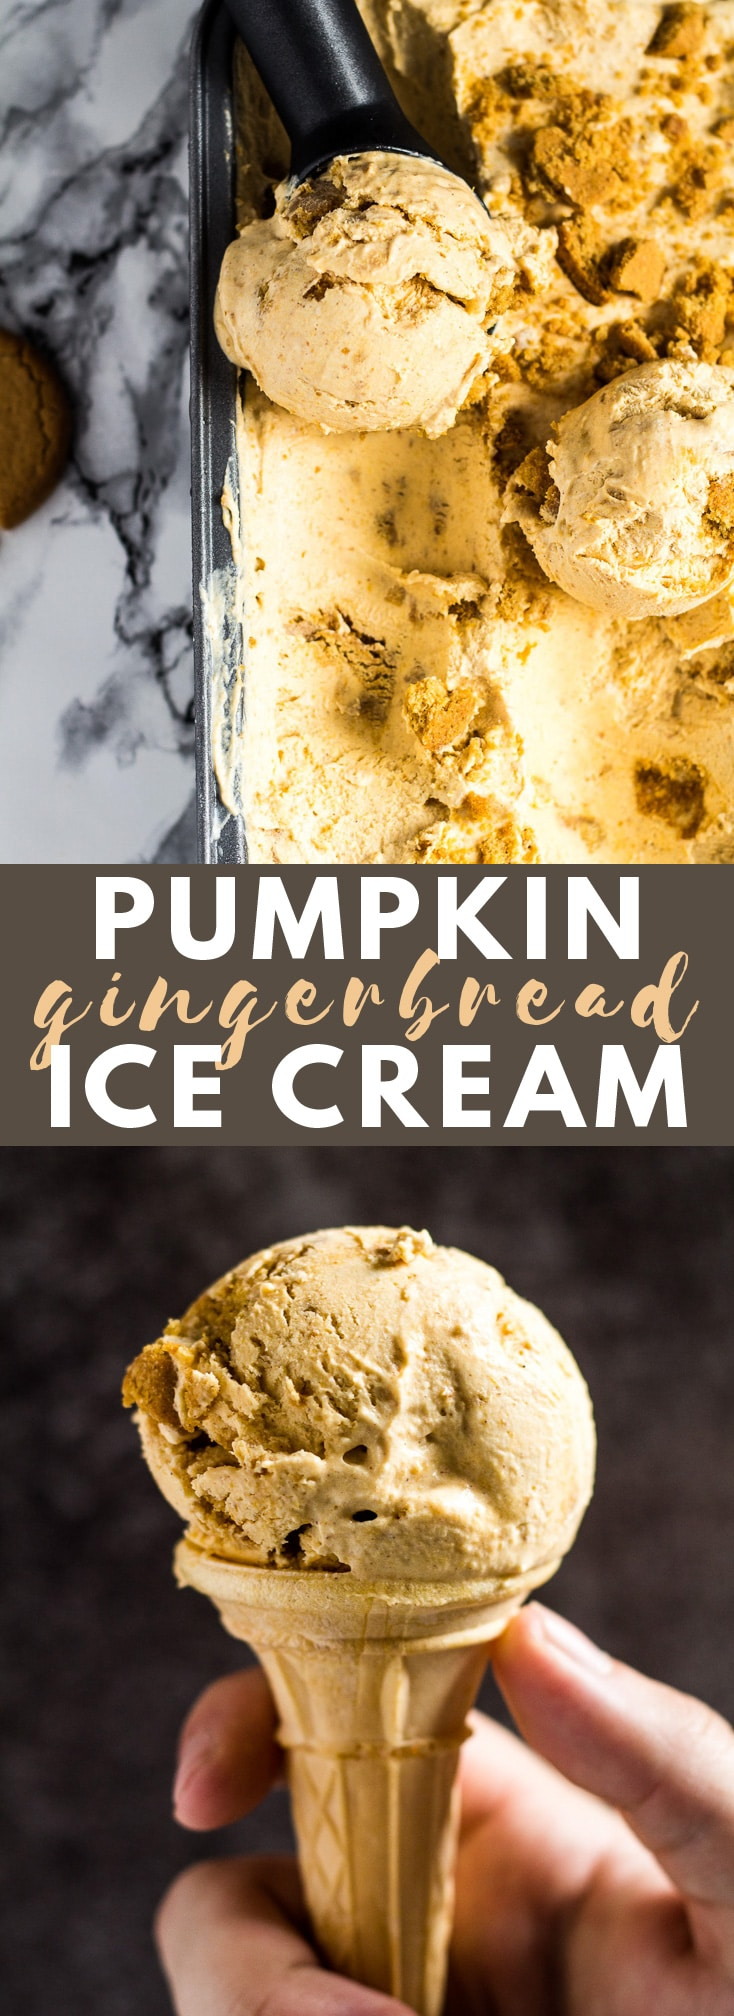 No-Churn Pumpkin Gingerbread Ice Cream - Deliciously creamy no-churn pumpkin ice cream that is perfectly spiced, and stuffed with ginger biscuits! #pumpkin #gingerbread #icecream #recipe